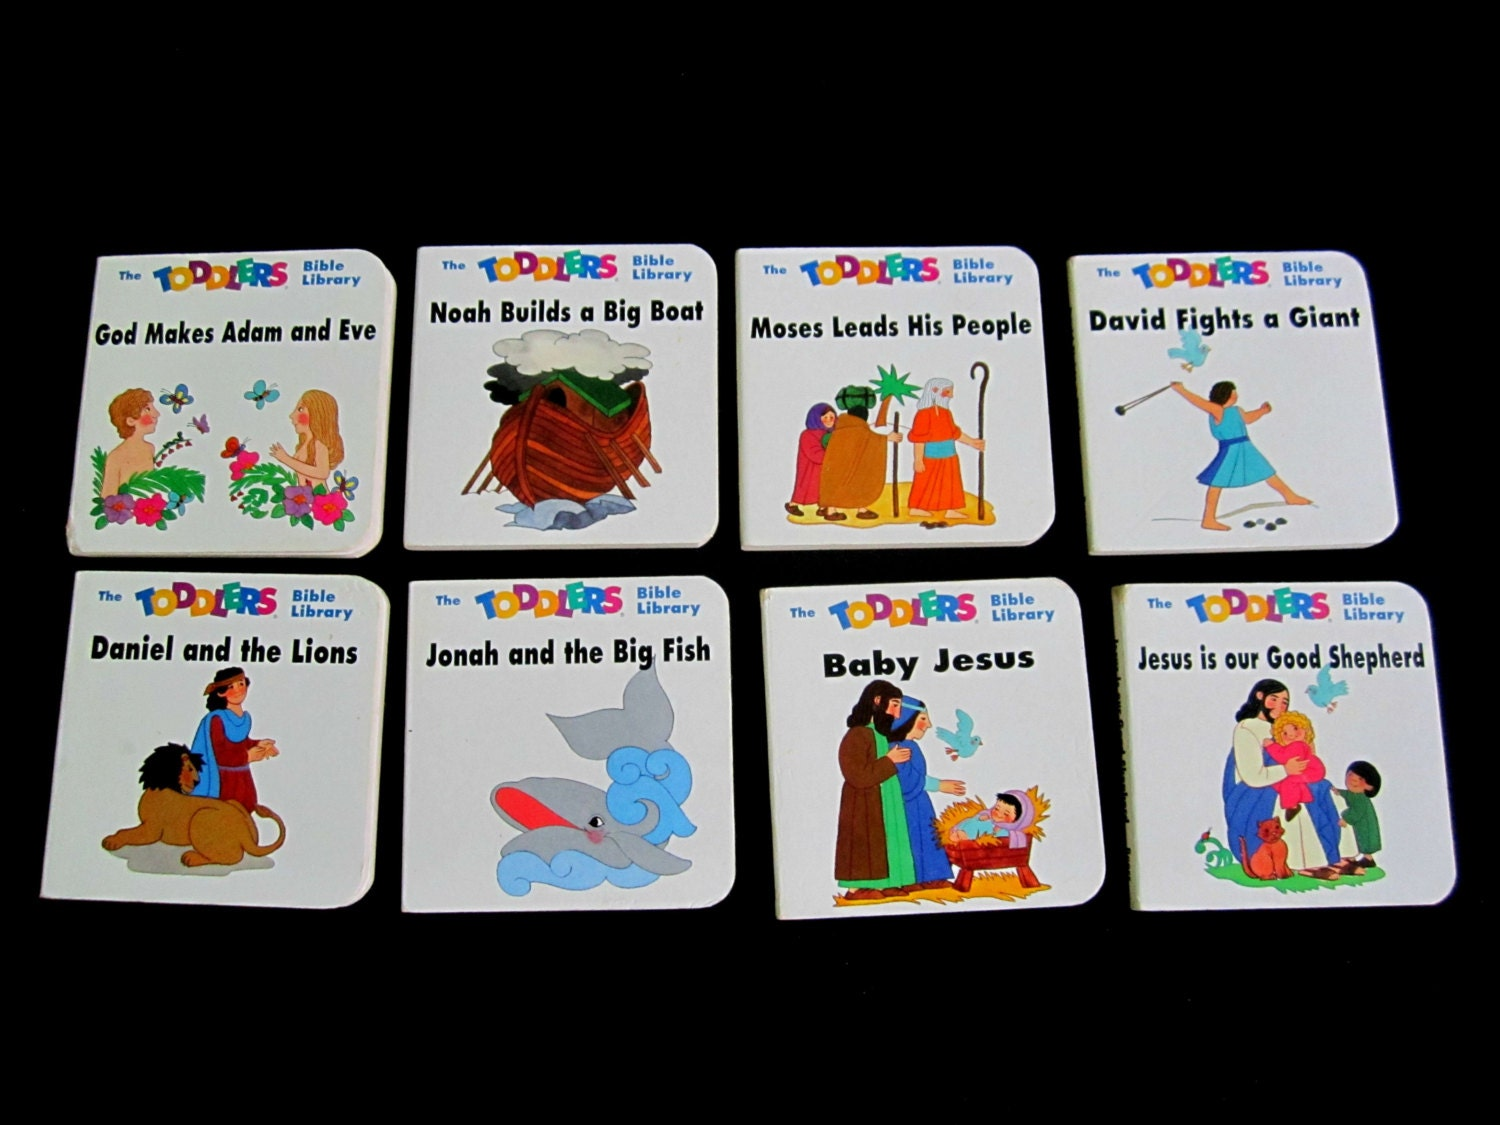 bible books for children complete set the toddlers bible library